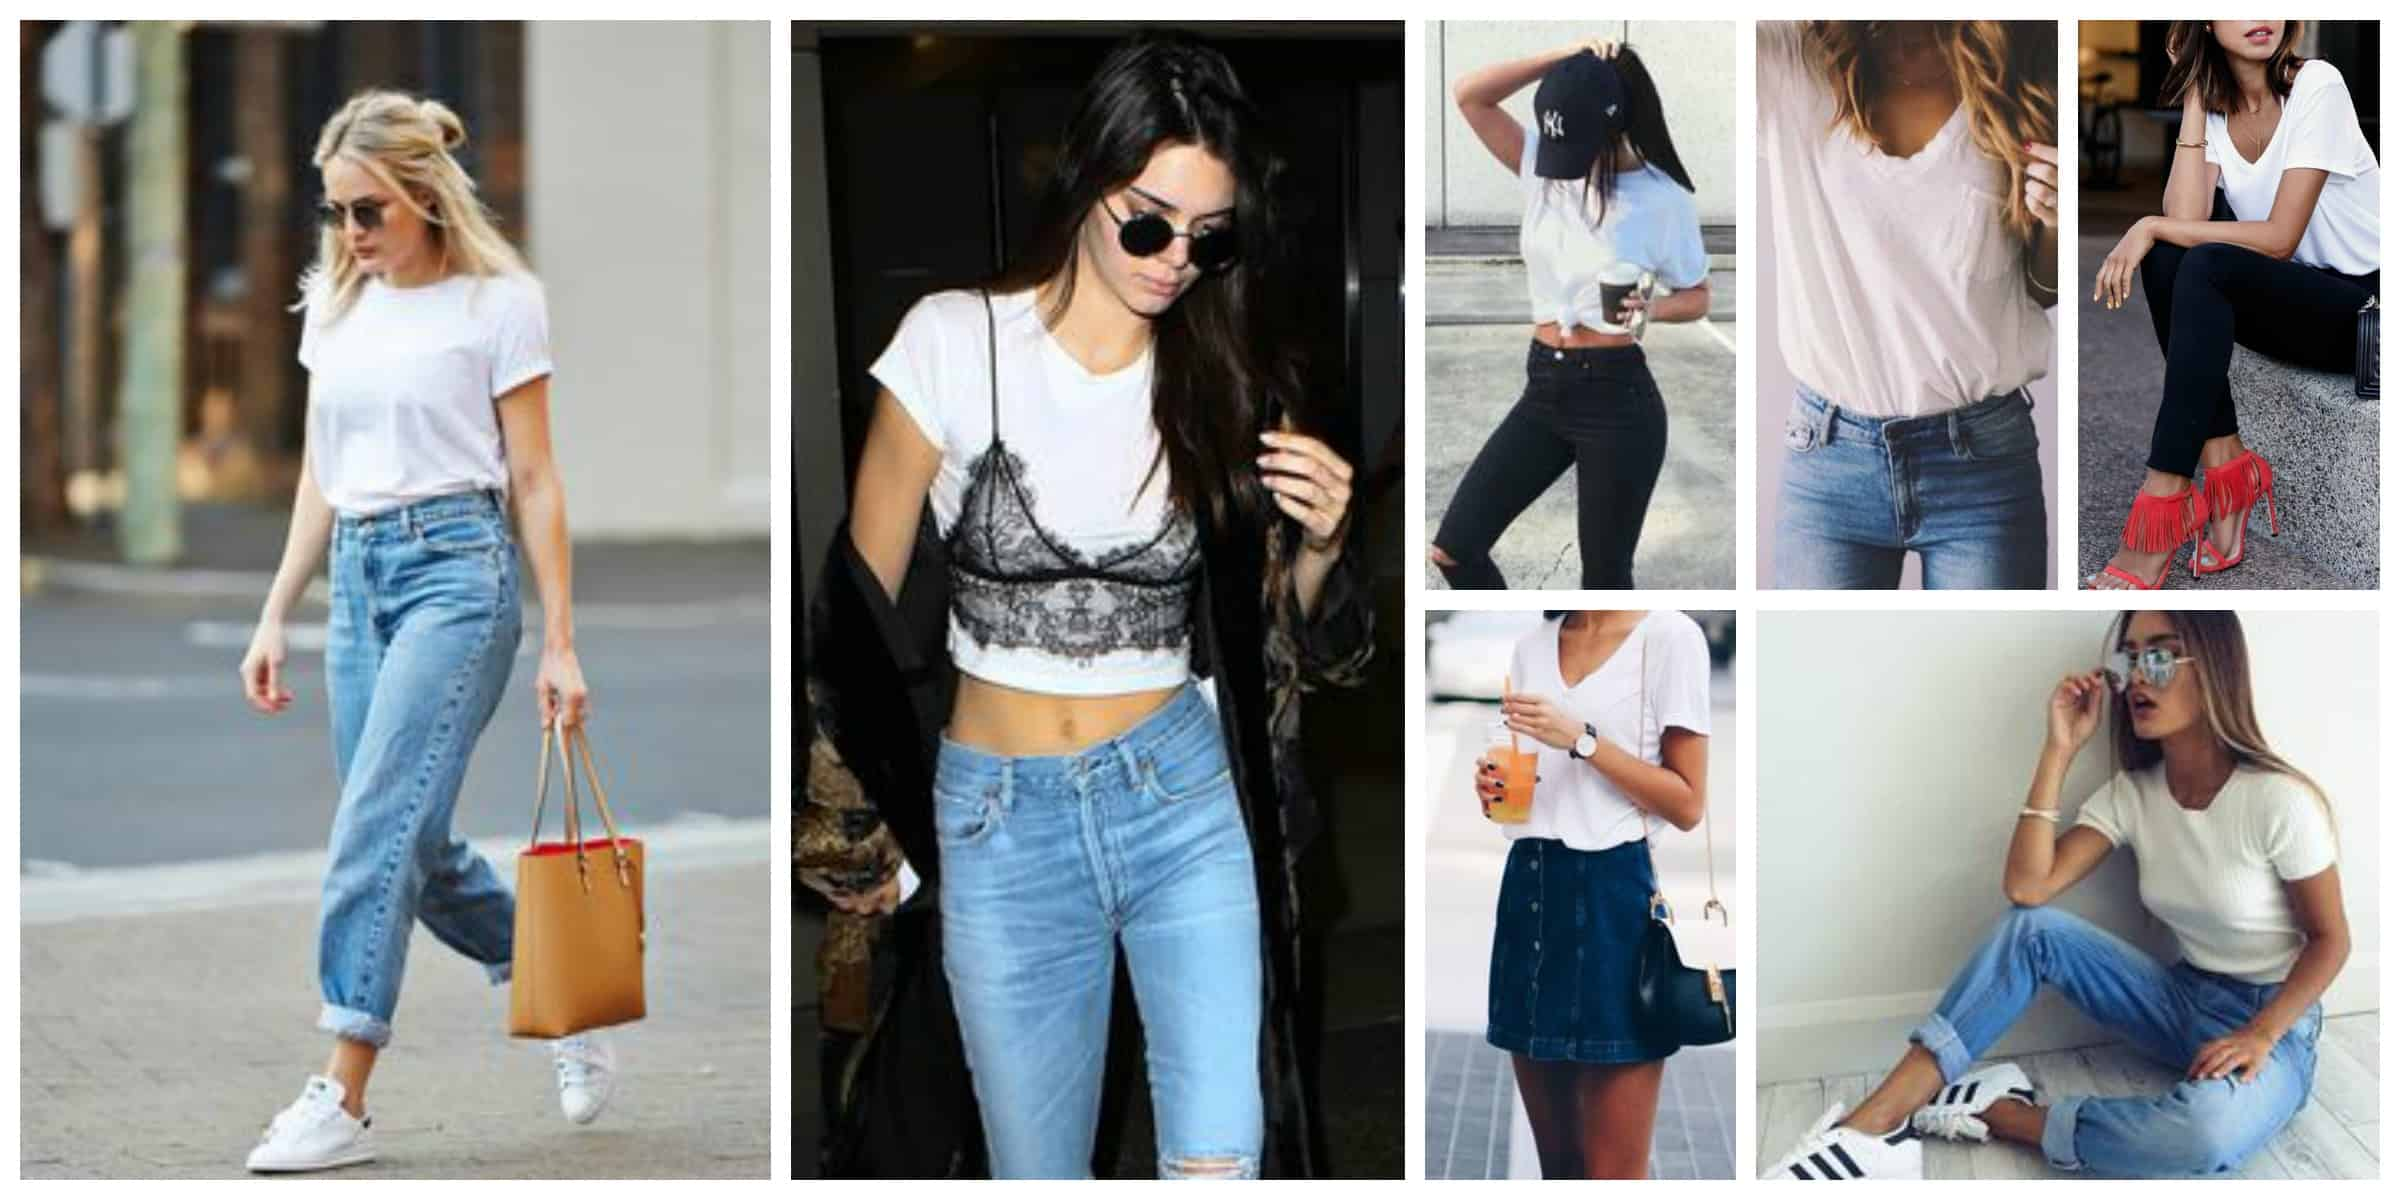 Timeless Fashion Tips For Now And Later